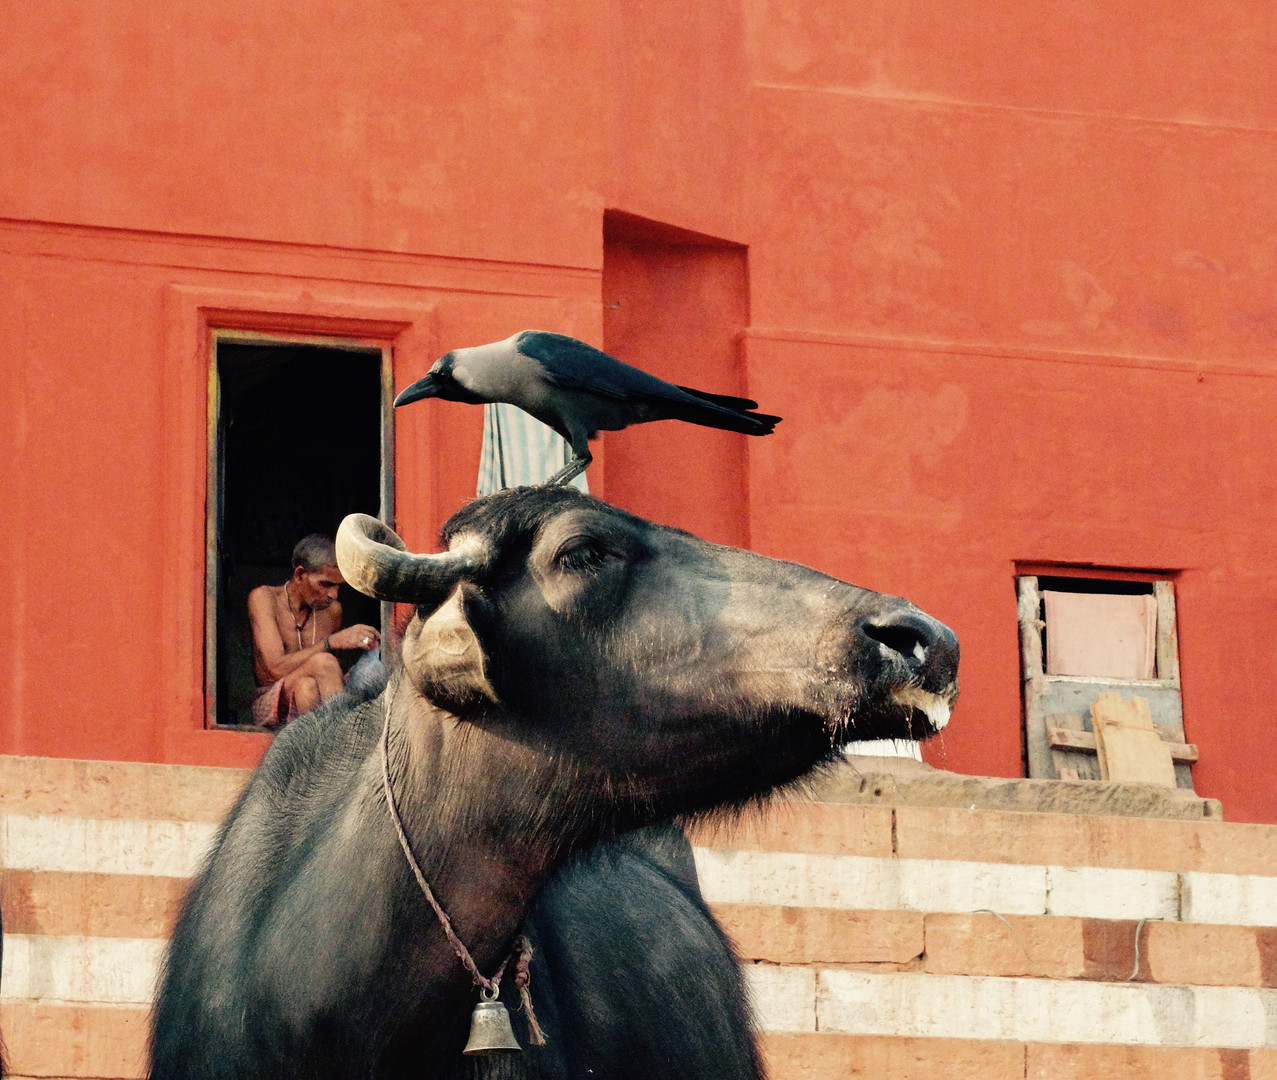 Bird on a cow